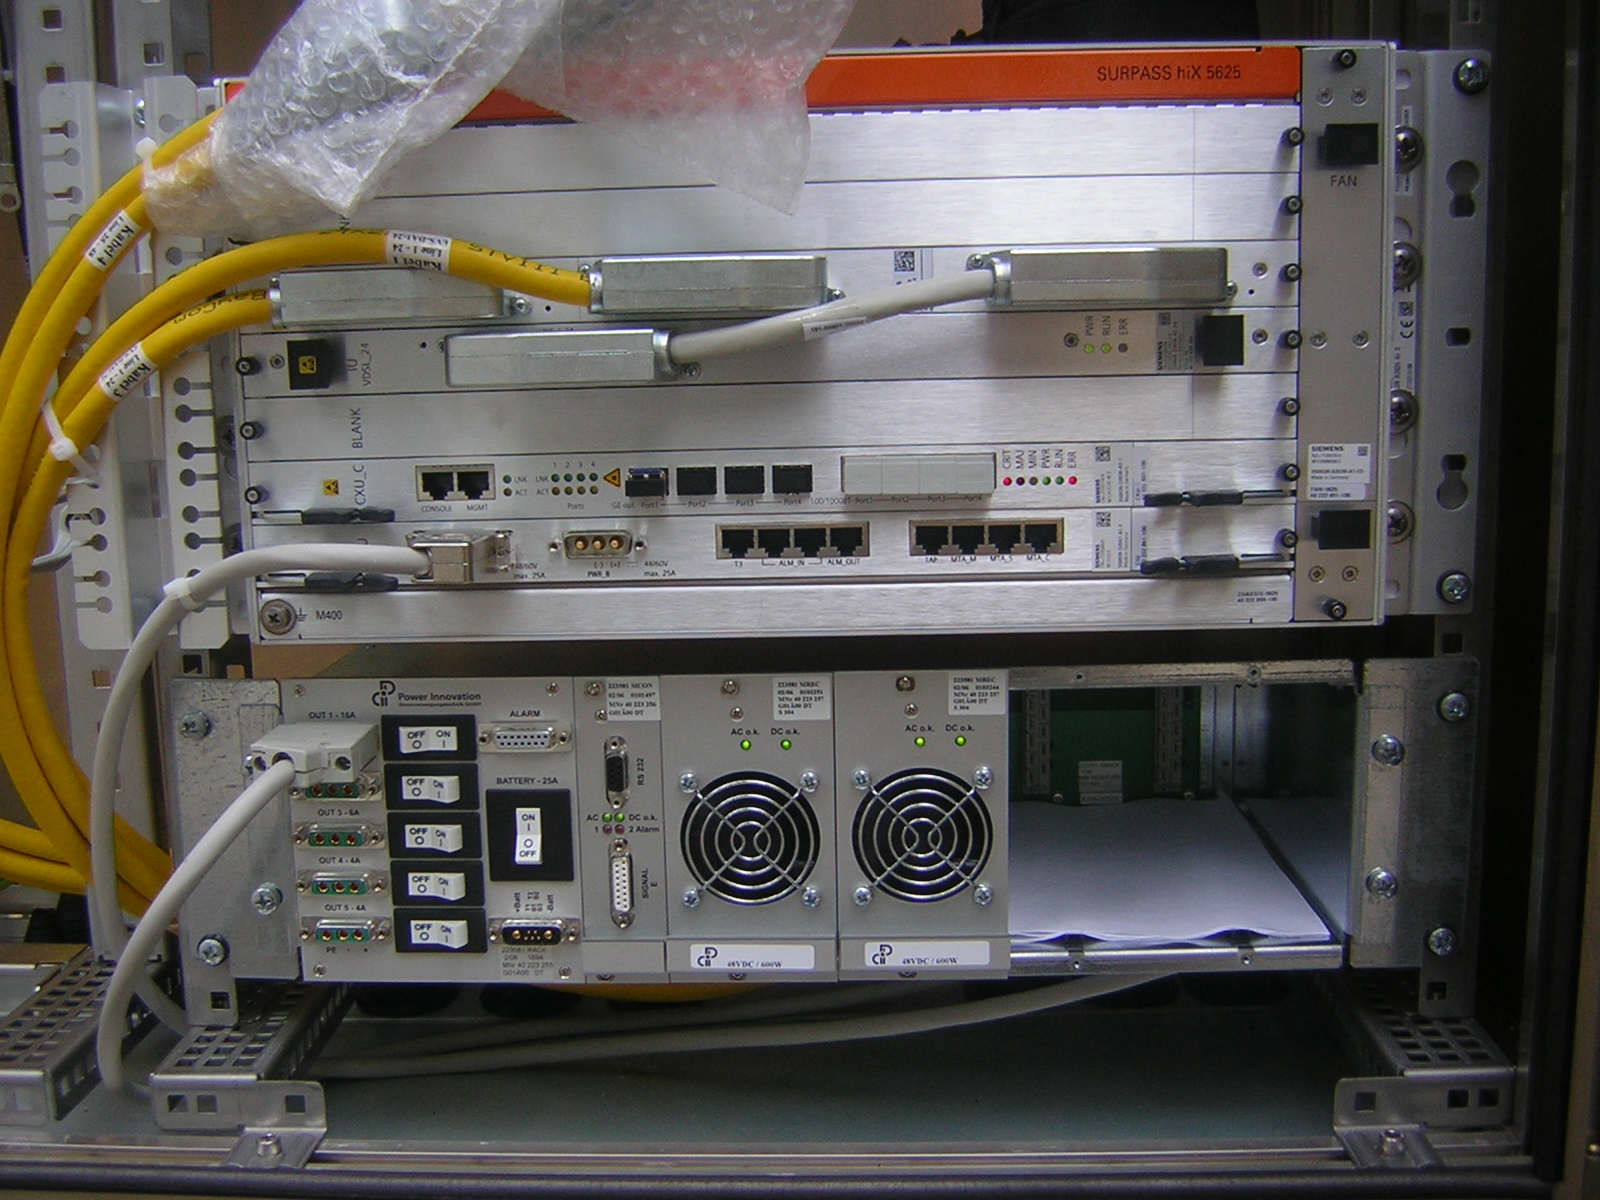 dslam equipment for providing dsl internet access